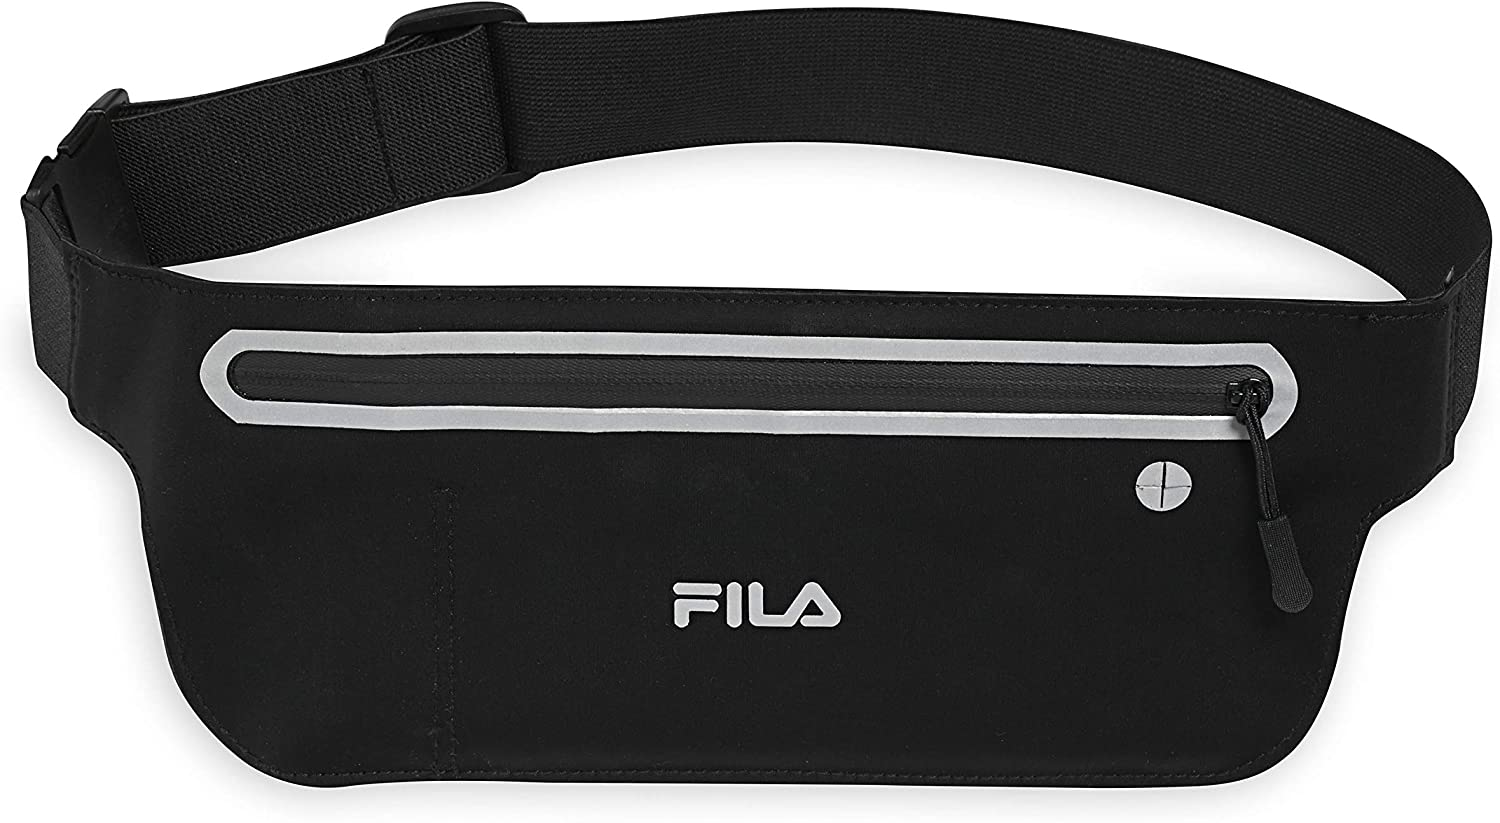 FILA Accessories Waist Pack - Running Belt Fanny Pack | Dash Adjustable Sports Pouch Phone Holder for Women & Men | Running, Walking, Cycling, Exercise & Fitness